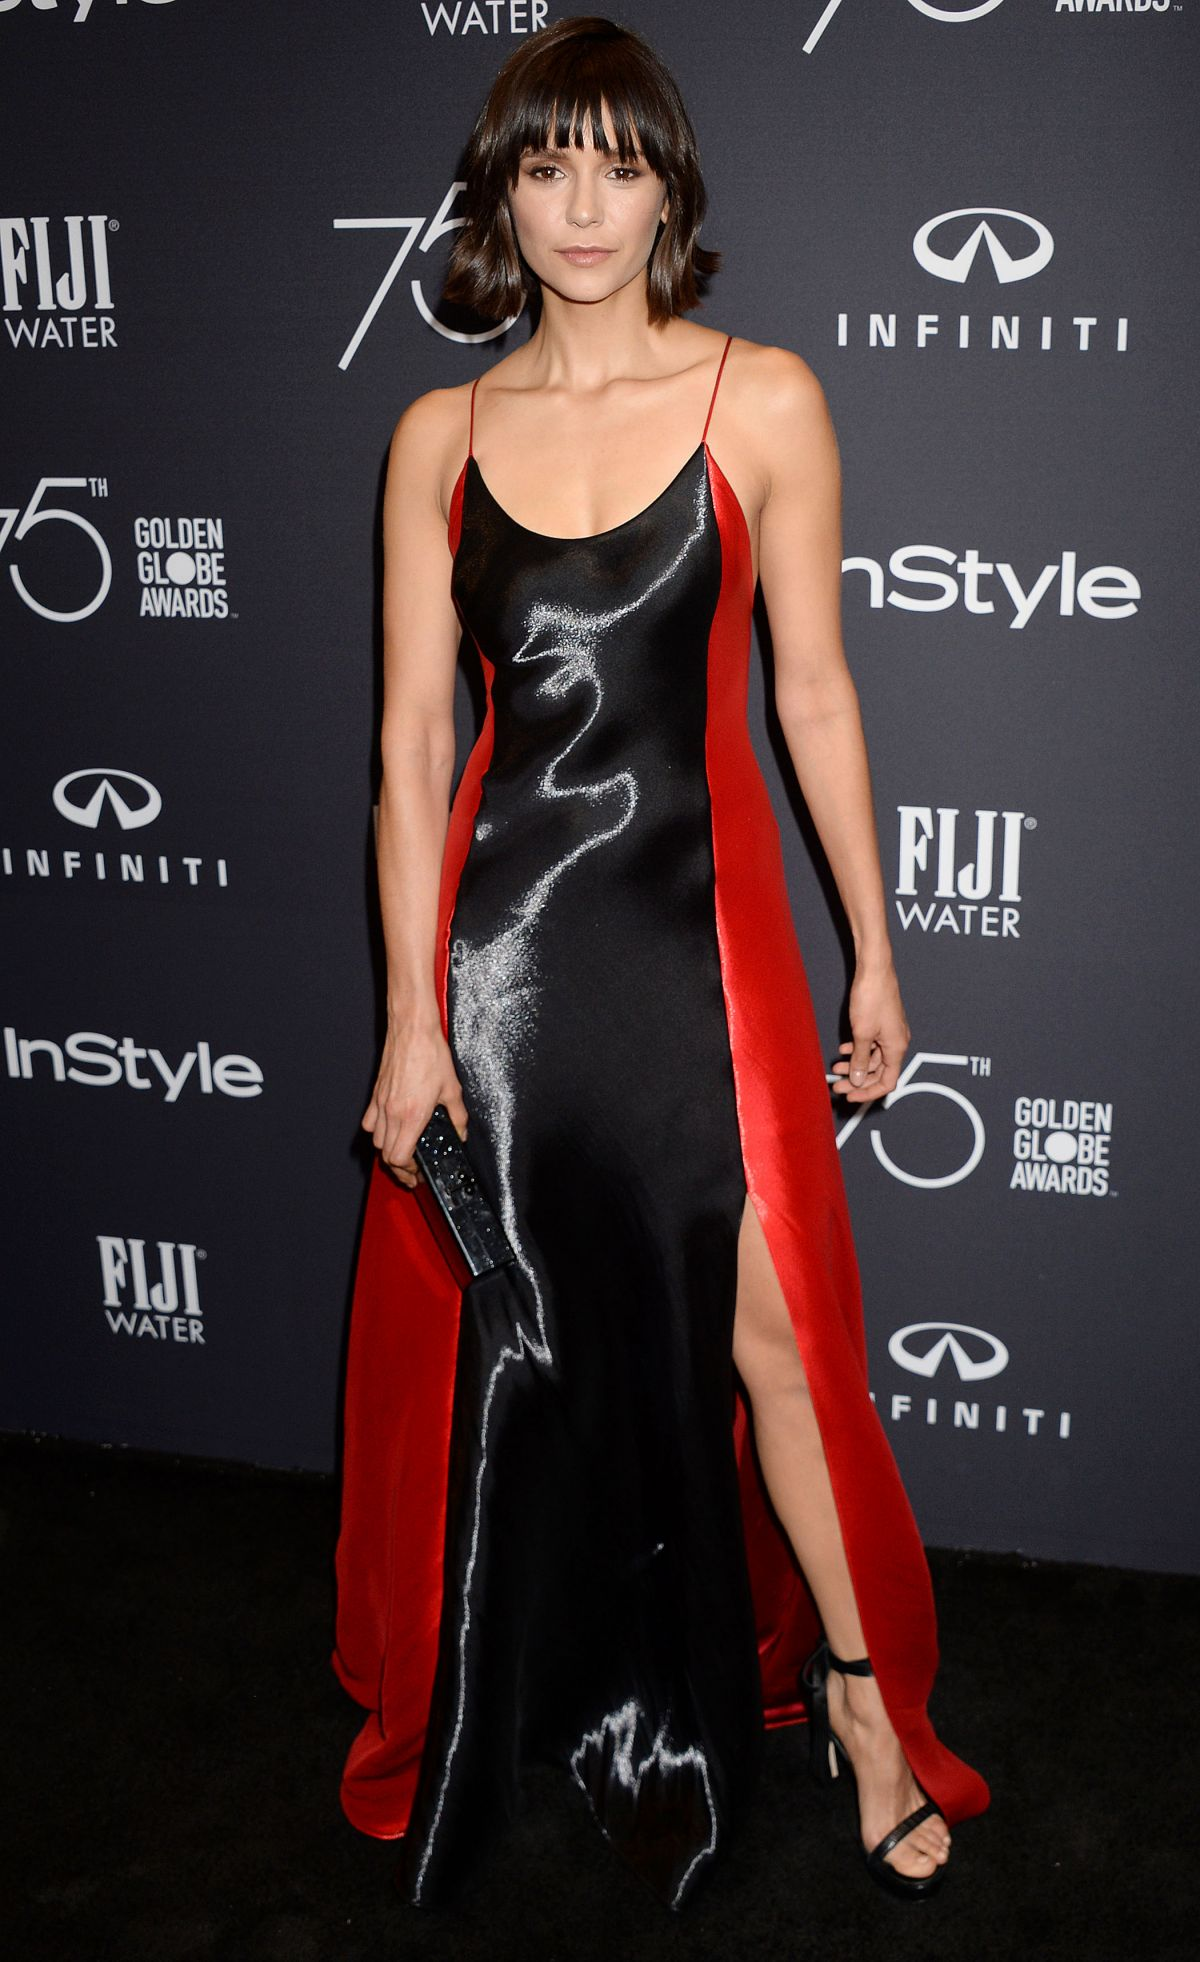 Nina Dobrev At HFPA and InStyle celebrate Golden Globe Season, Los Angeles   nina-dobrev-at-hfpa-and-instyle-celebrate-golden-globe-season-los-angeles-3